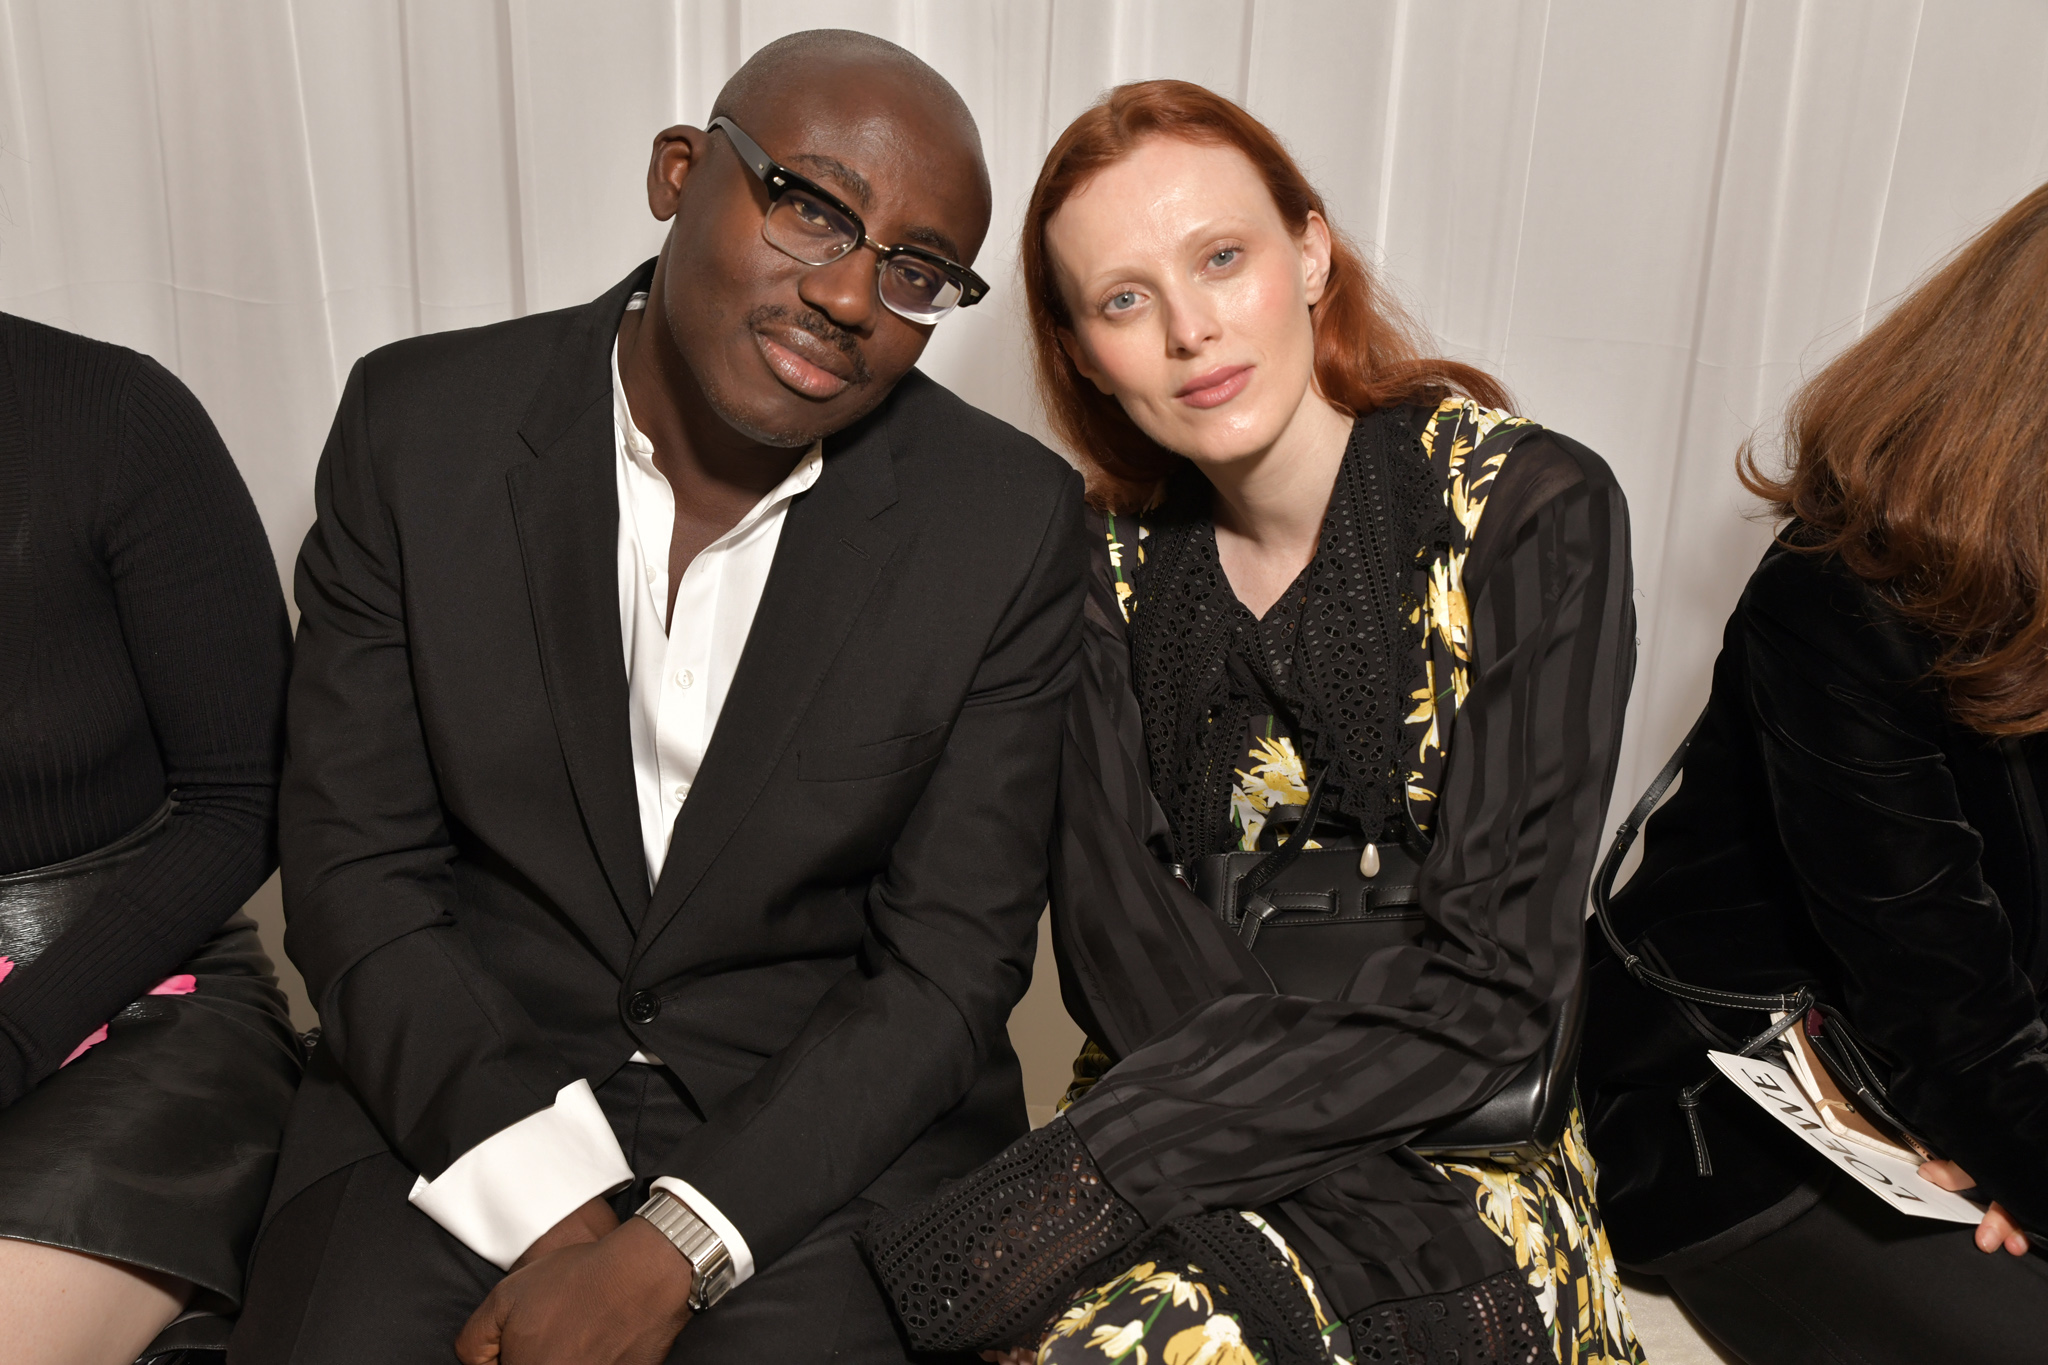 Edward Enninful and Karen Elson